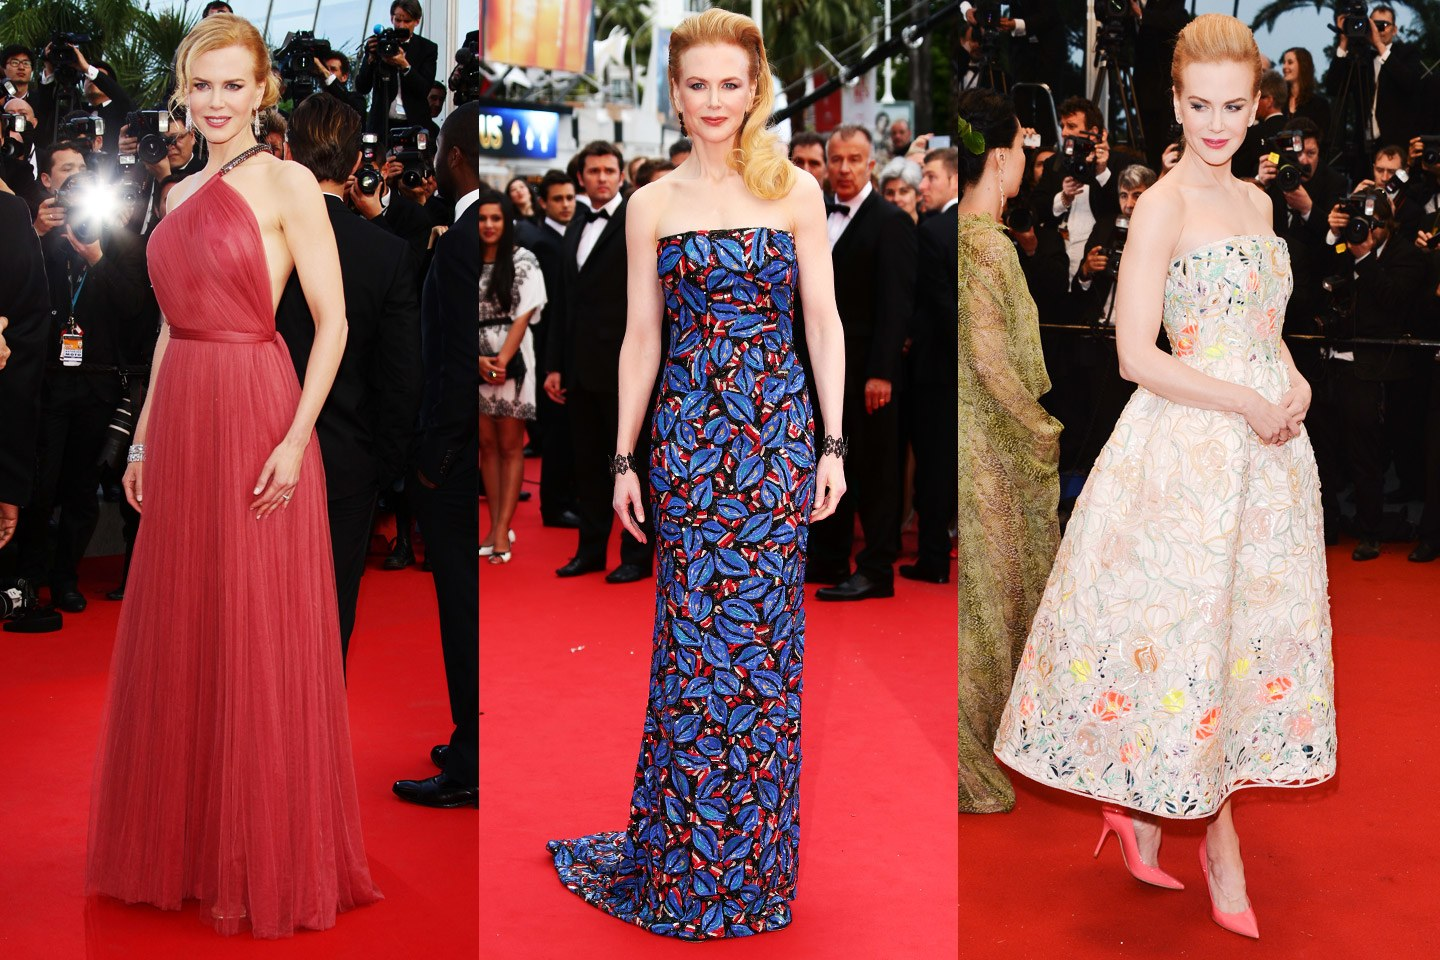 - Nicole Kidman at Cannes: The secret of dressing the festival's biggest starBy JULIE MILLER(Vanity Fair, 19 May 2017)Kidman's longtime stylist Julia von Boehm tells Vanity Fair about outfitting the Oscar winner for Cannes.